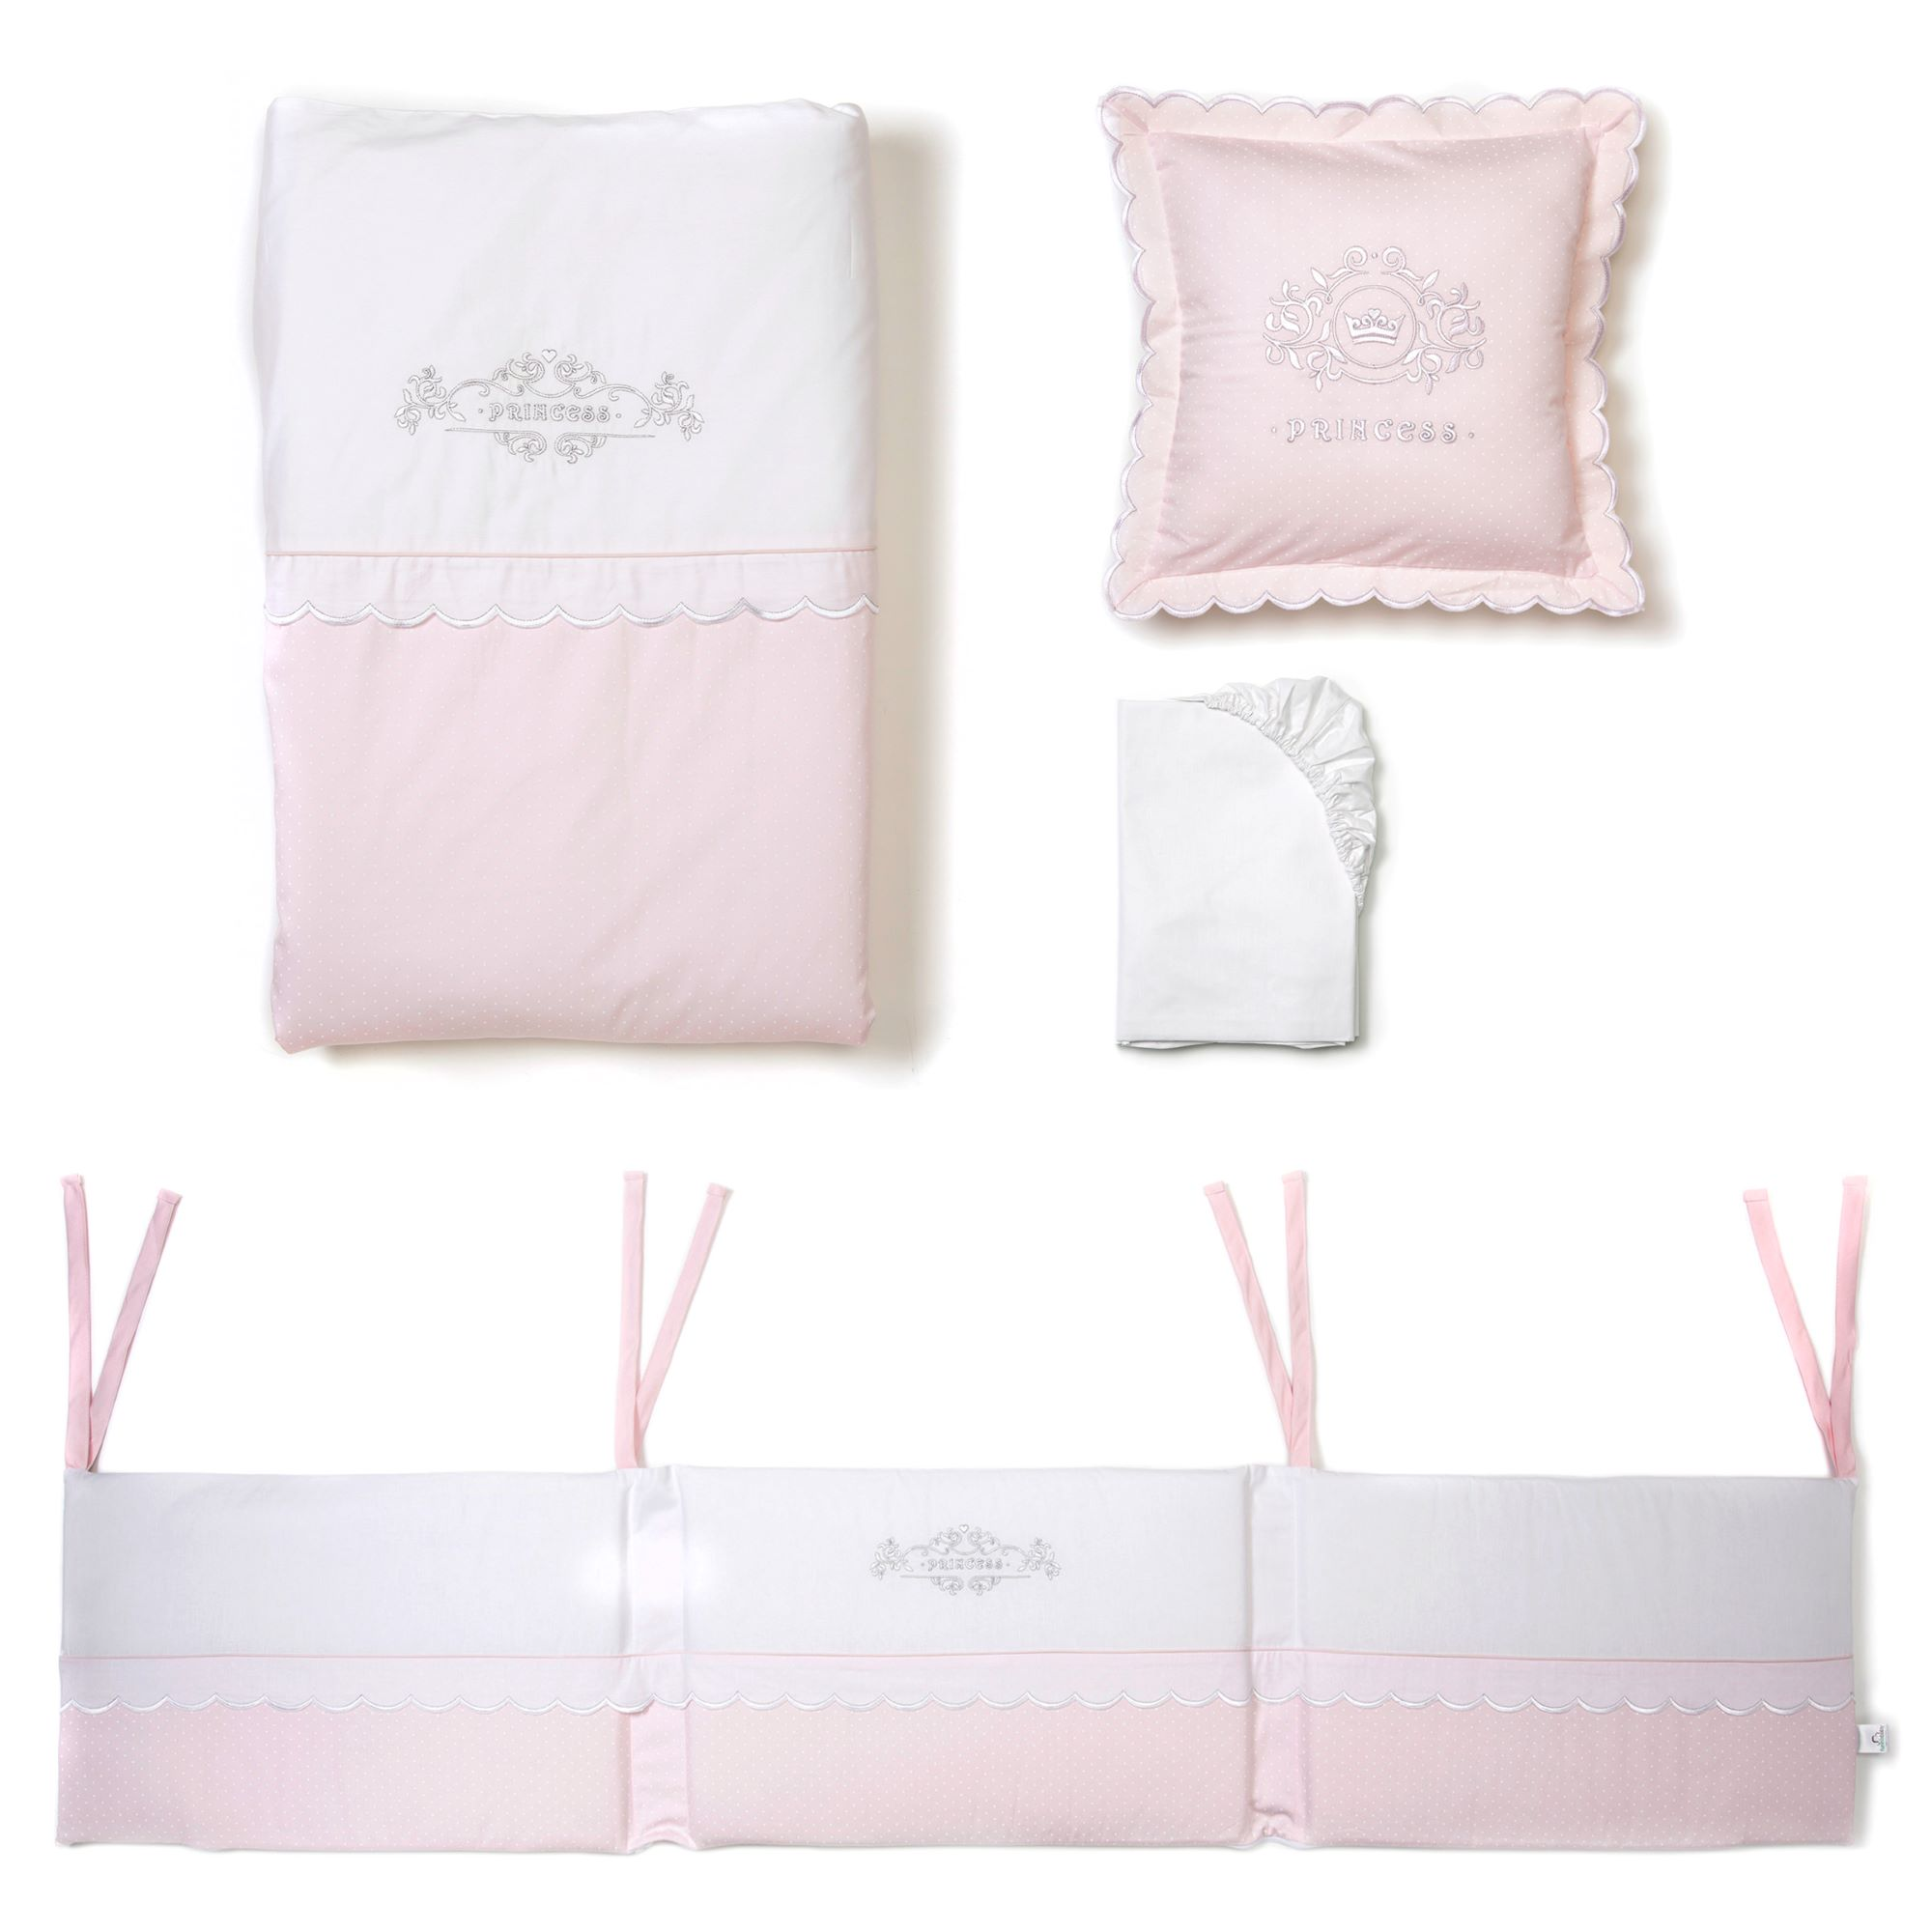 mee-go little princess cot bed 5 piece nursery bedding bale